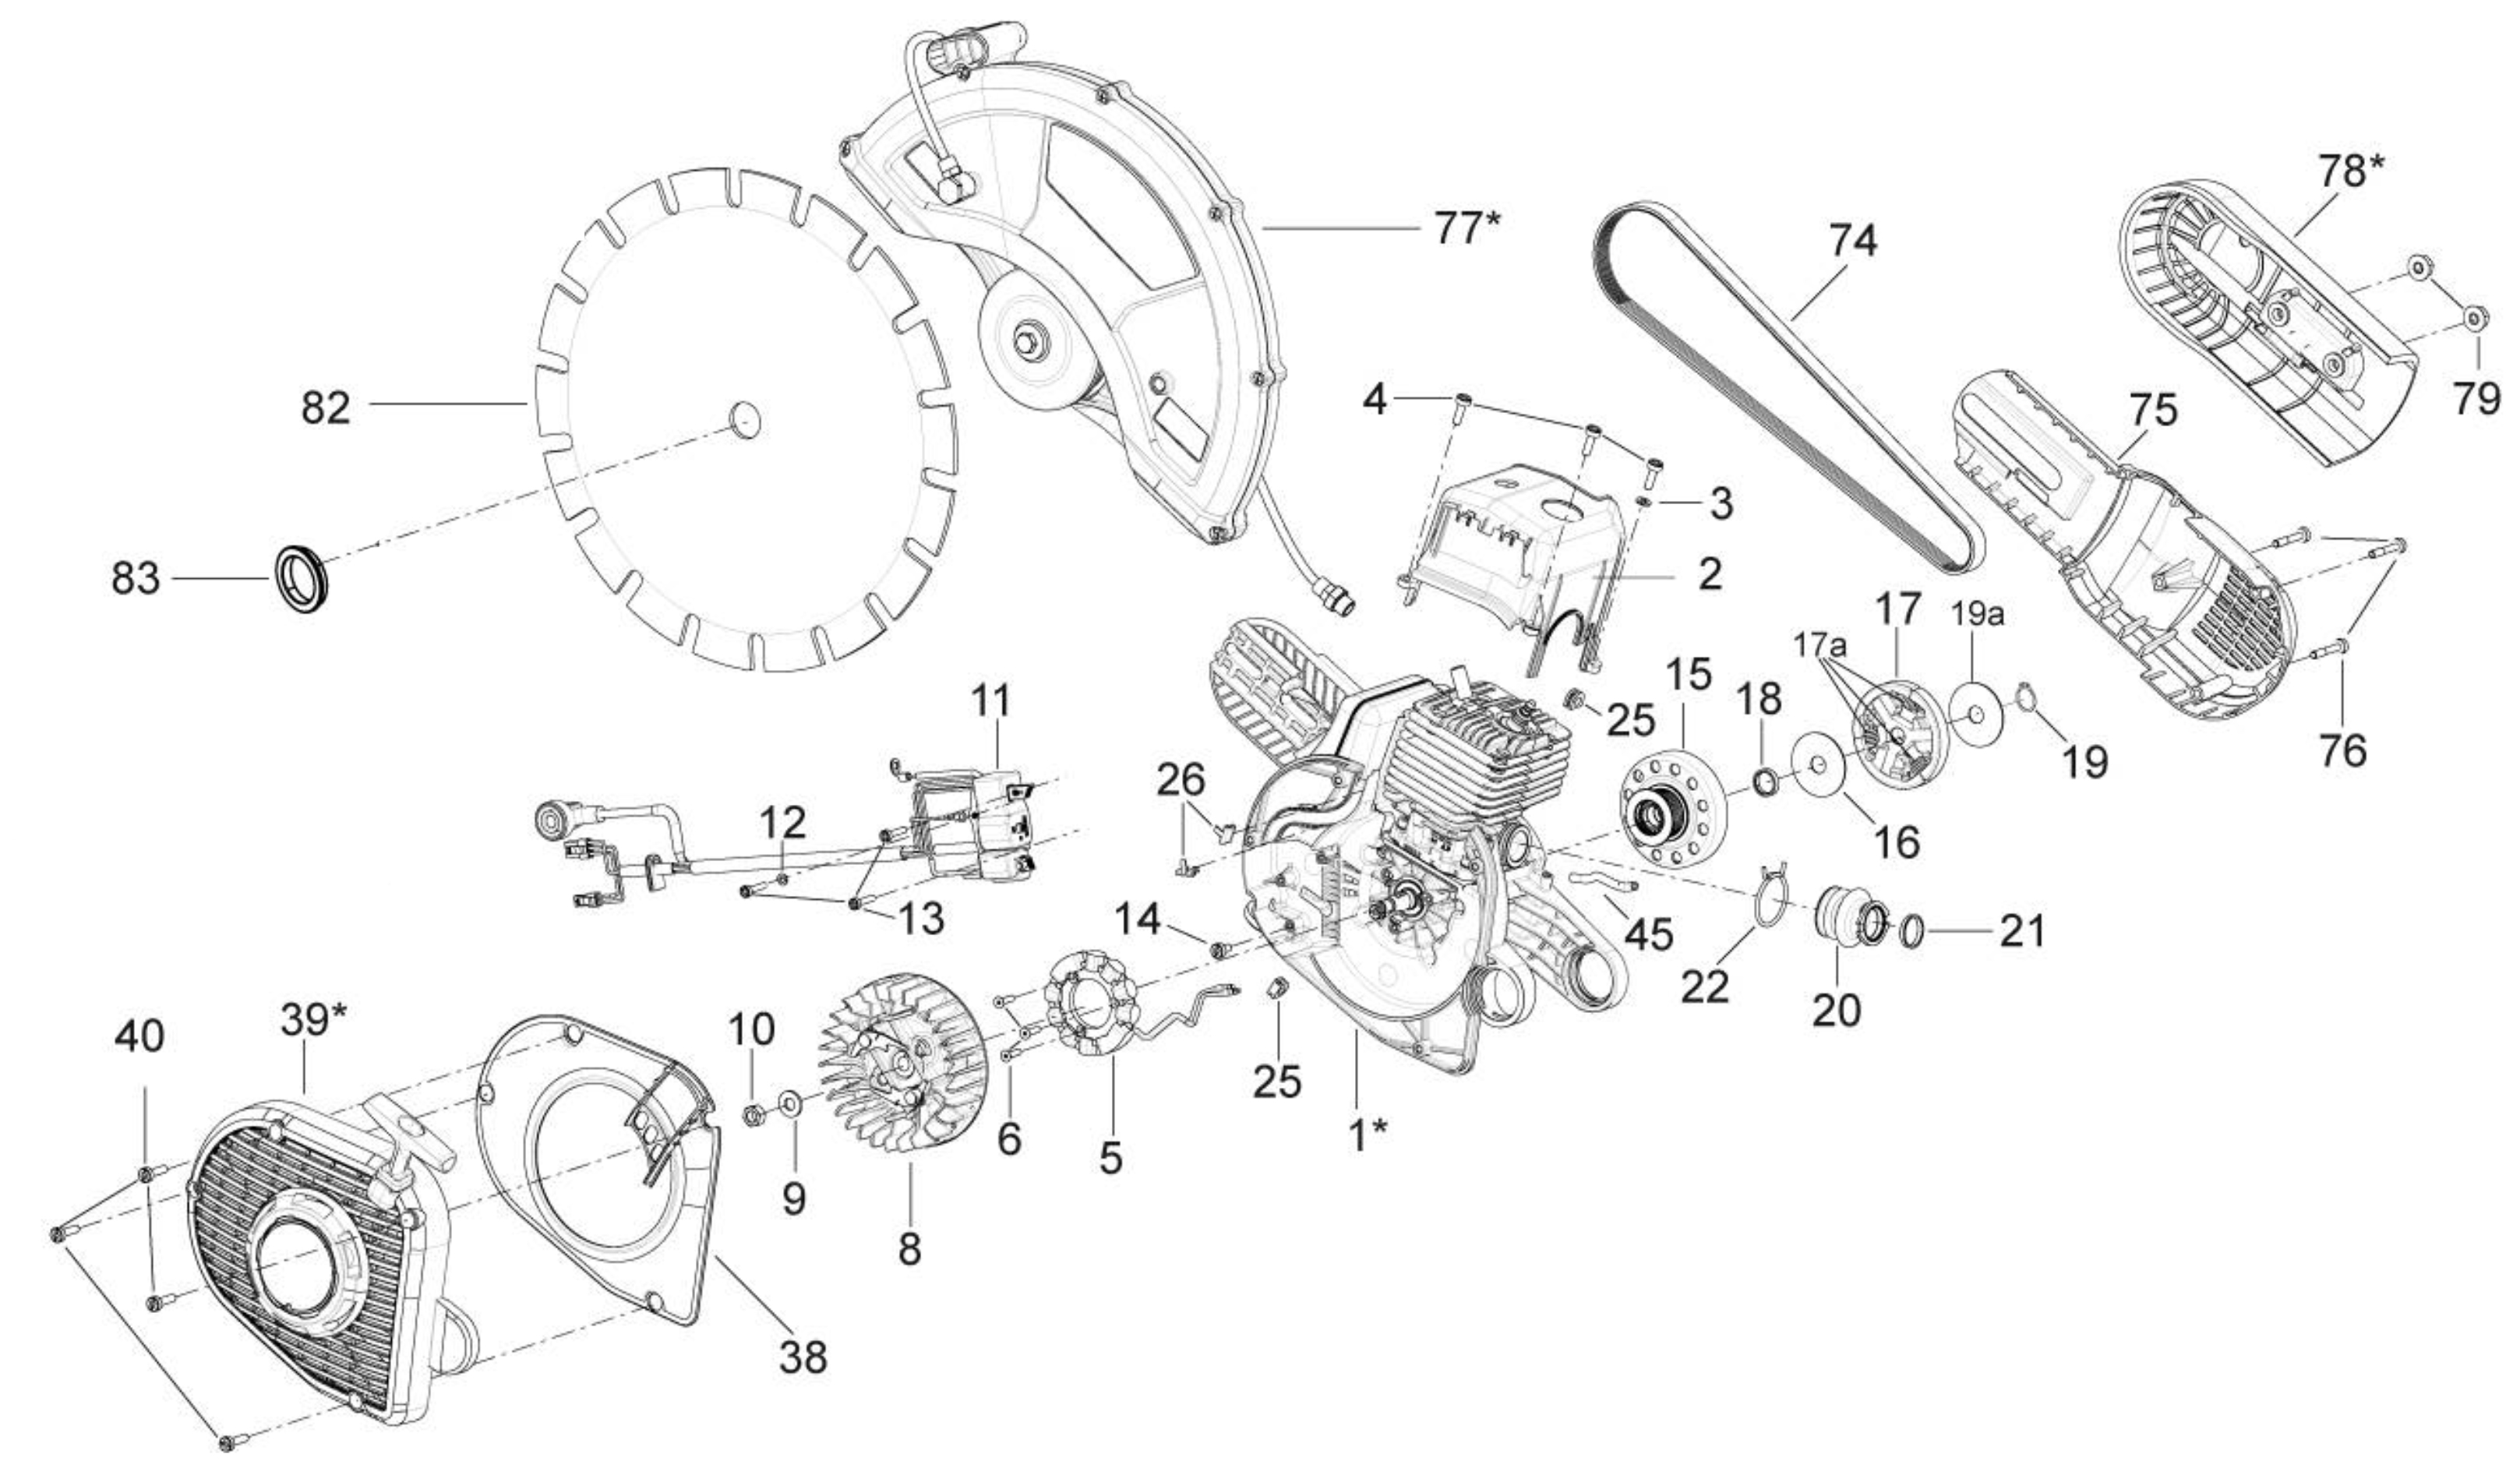 881-14-engineanddriveunit.jpg